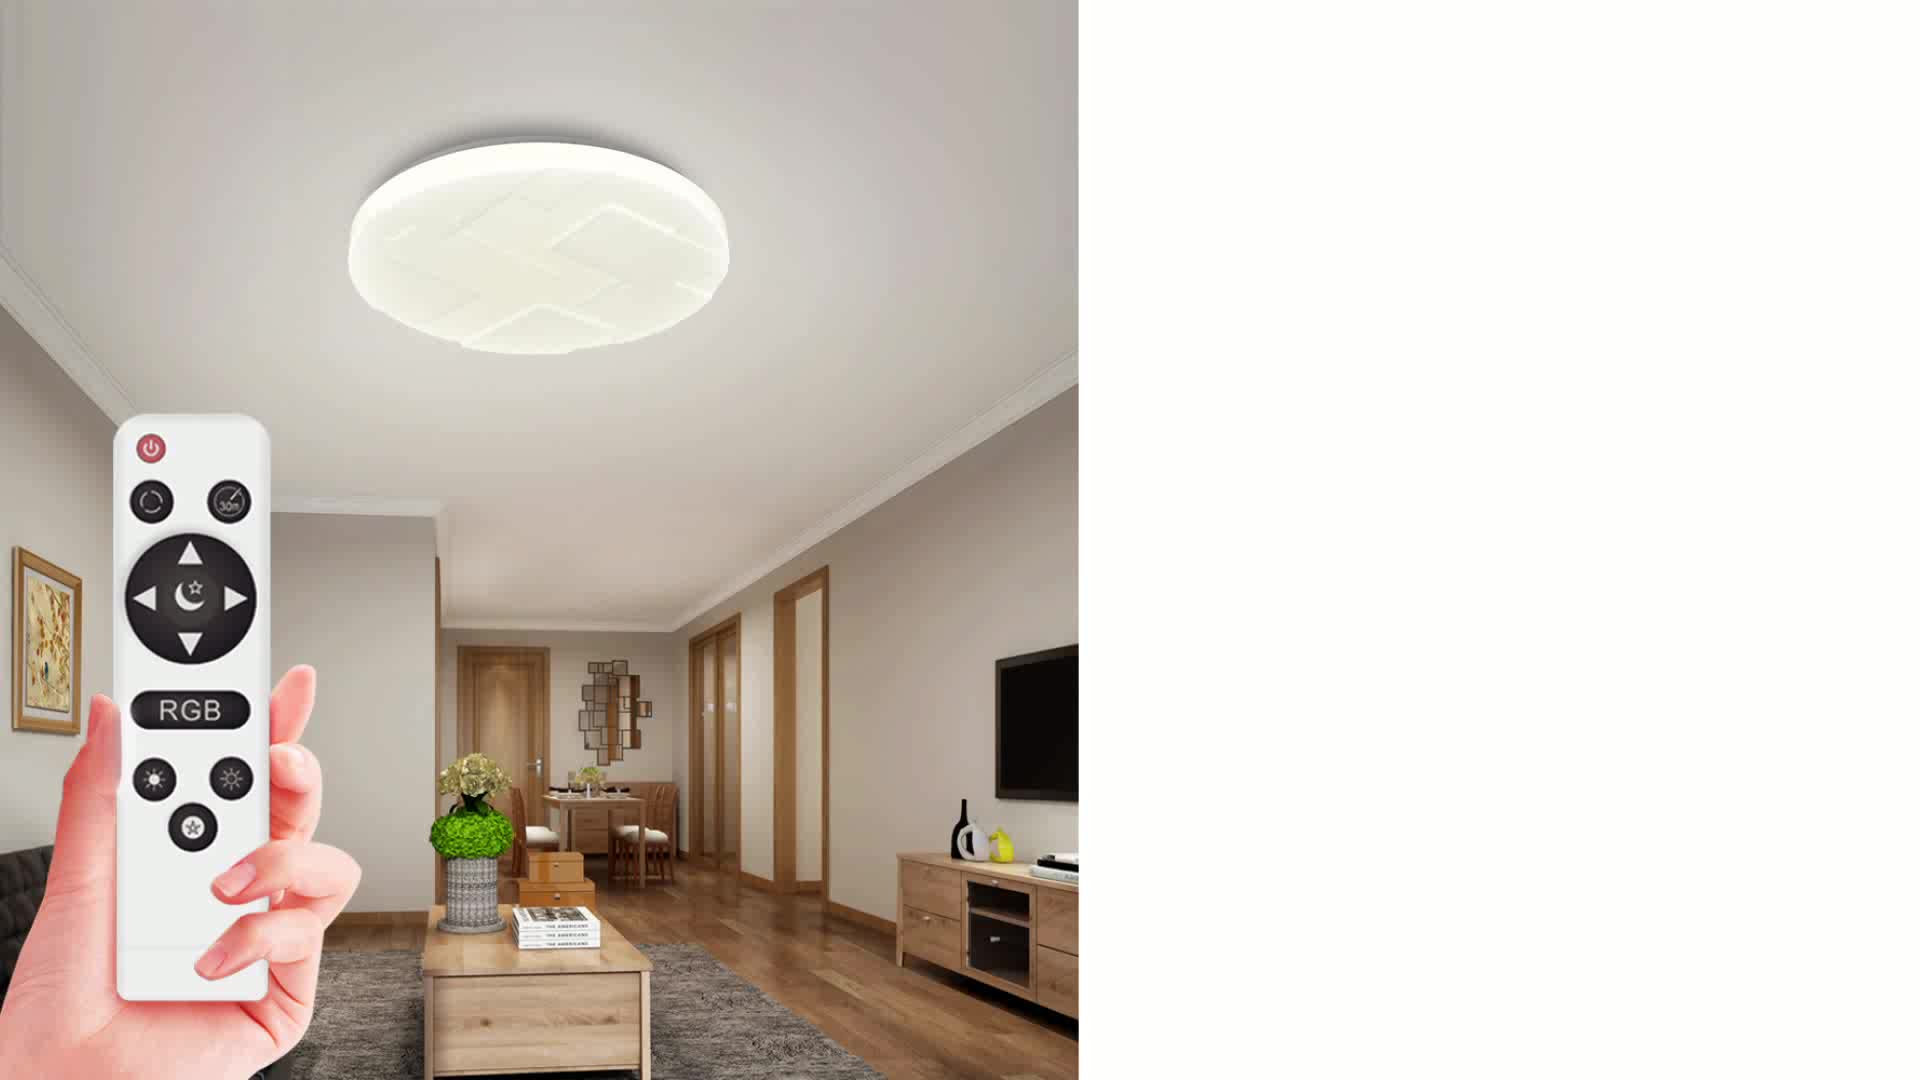 Wall Mounted Ceiling Light Wireless Control Ceiling Lamp with Colorful Lights Design Lighting Plafonnier Led Room Light 2.4G